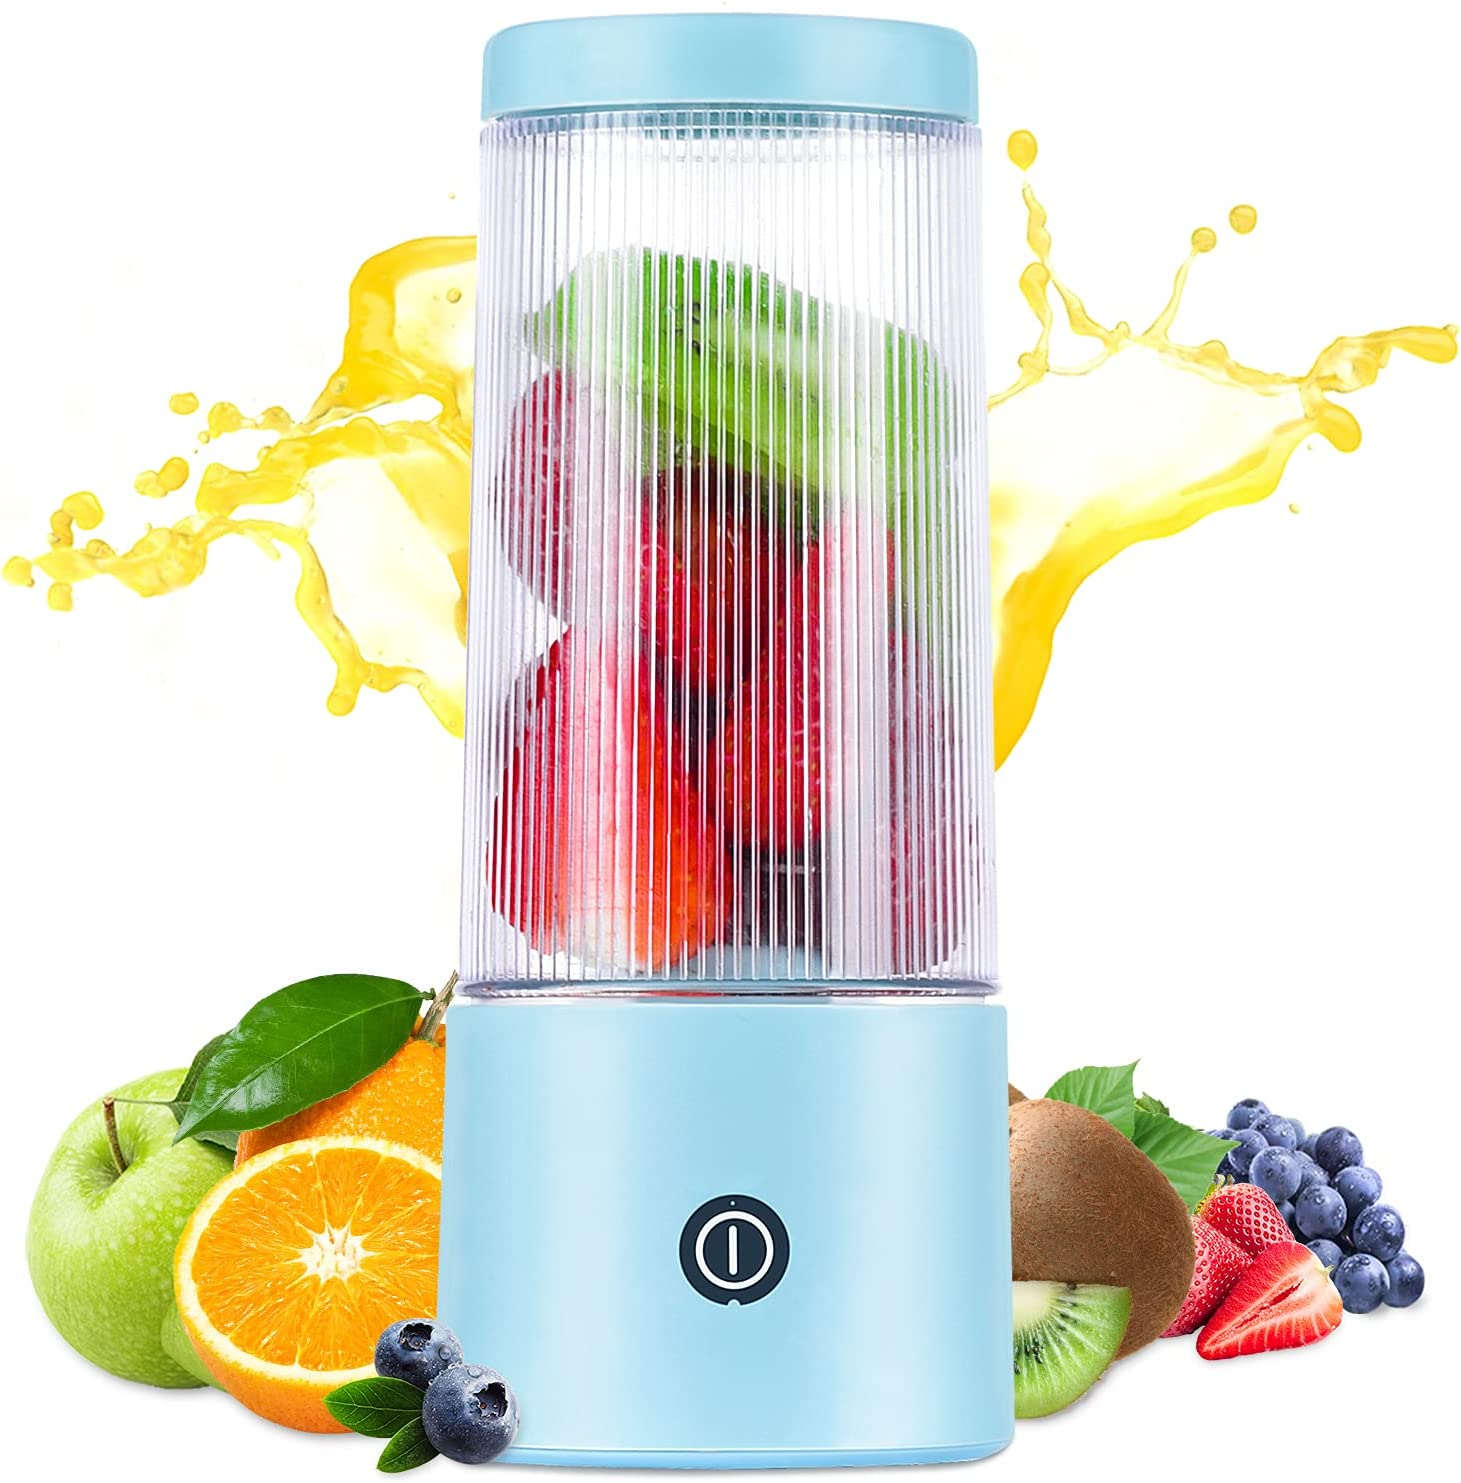 Portable Blender, HOPENE Personal Blender for Shakes and Smoothies, 12oz Fruit Juicer Bottle, Mini Blender Cup Portable USB Rechargeable for Travel Sports Office Gym and Outdoors